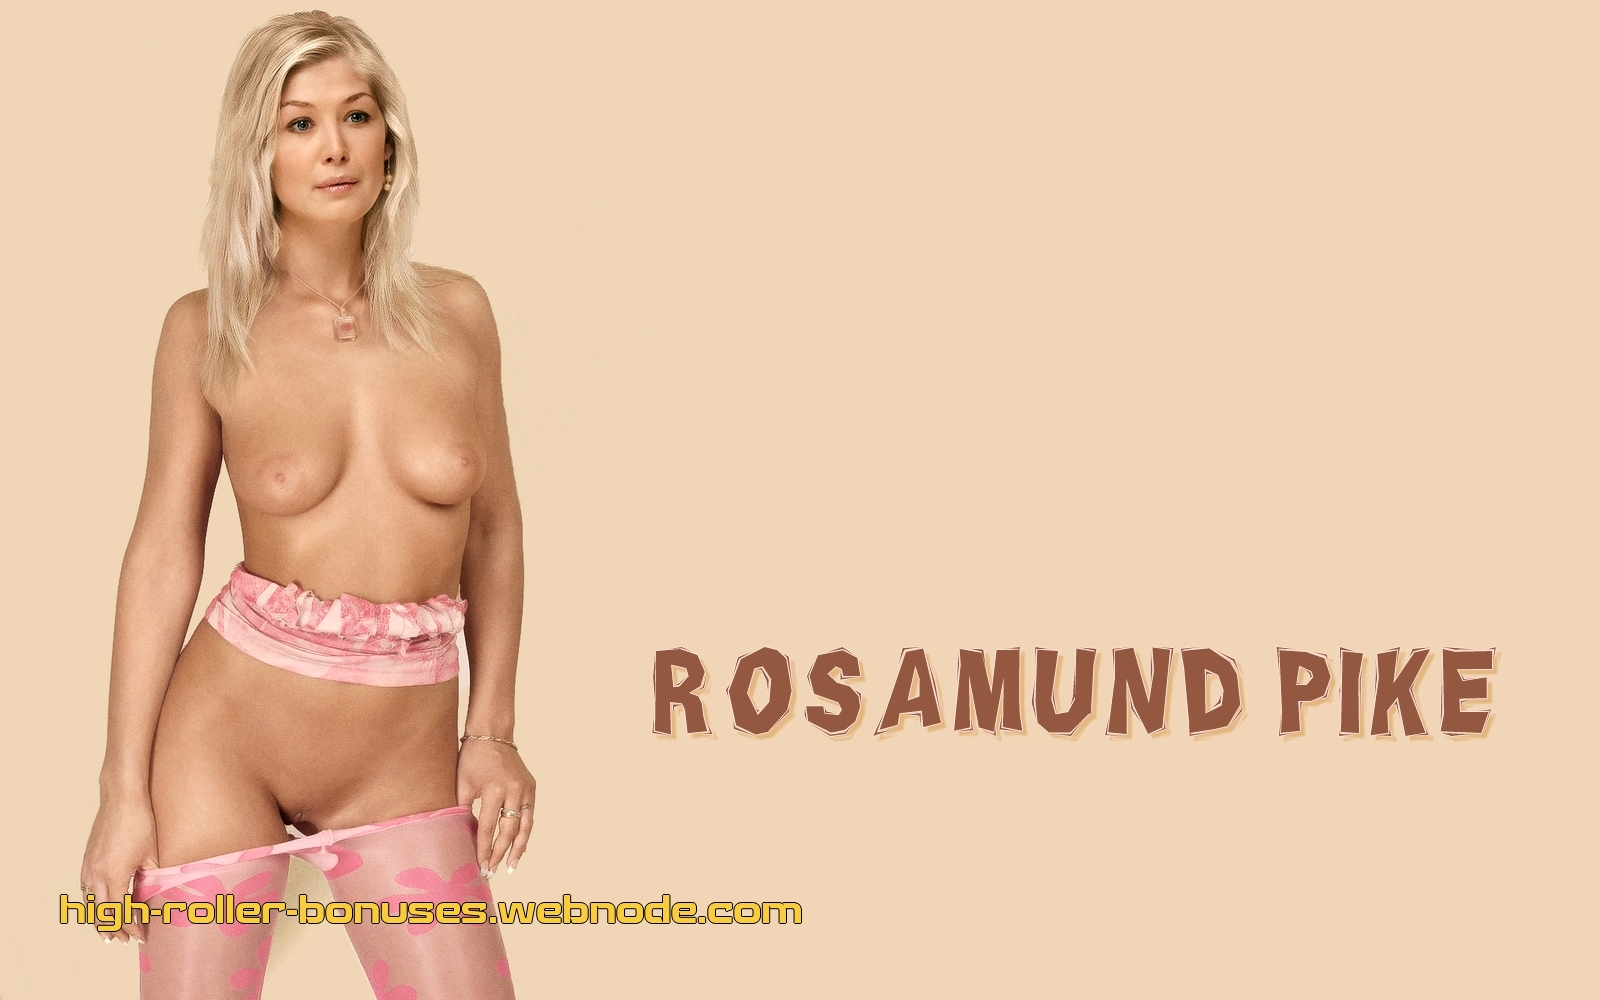 Pike naked rosamund